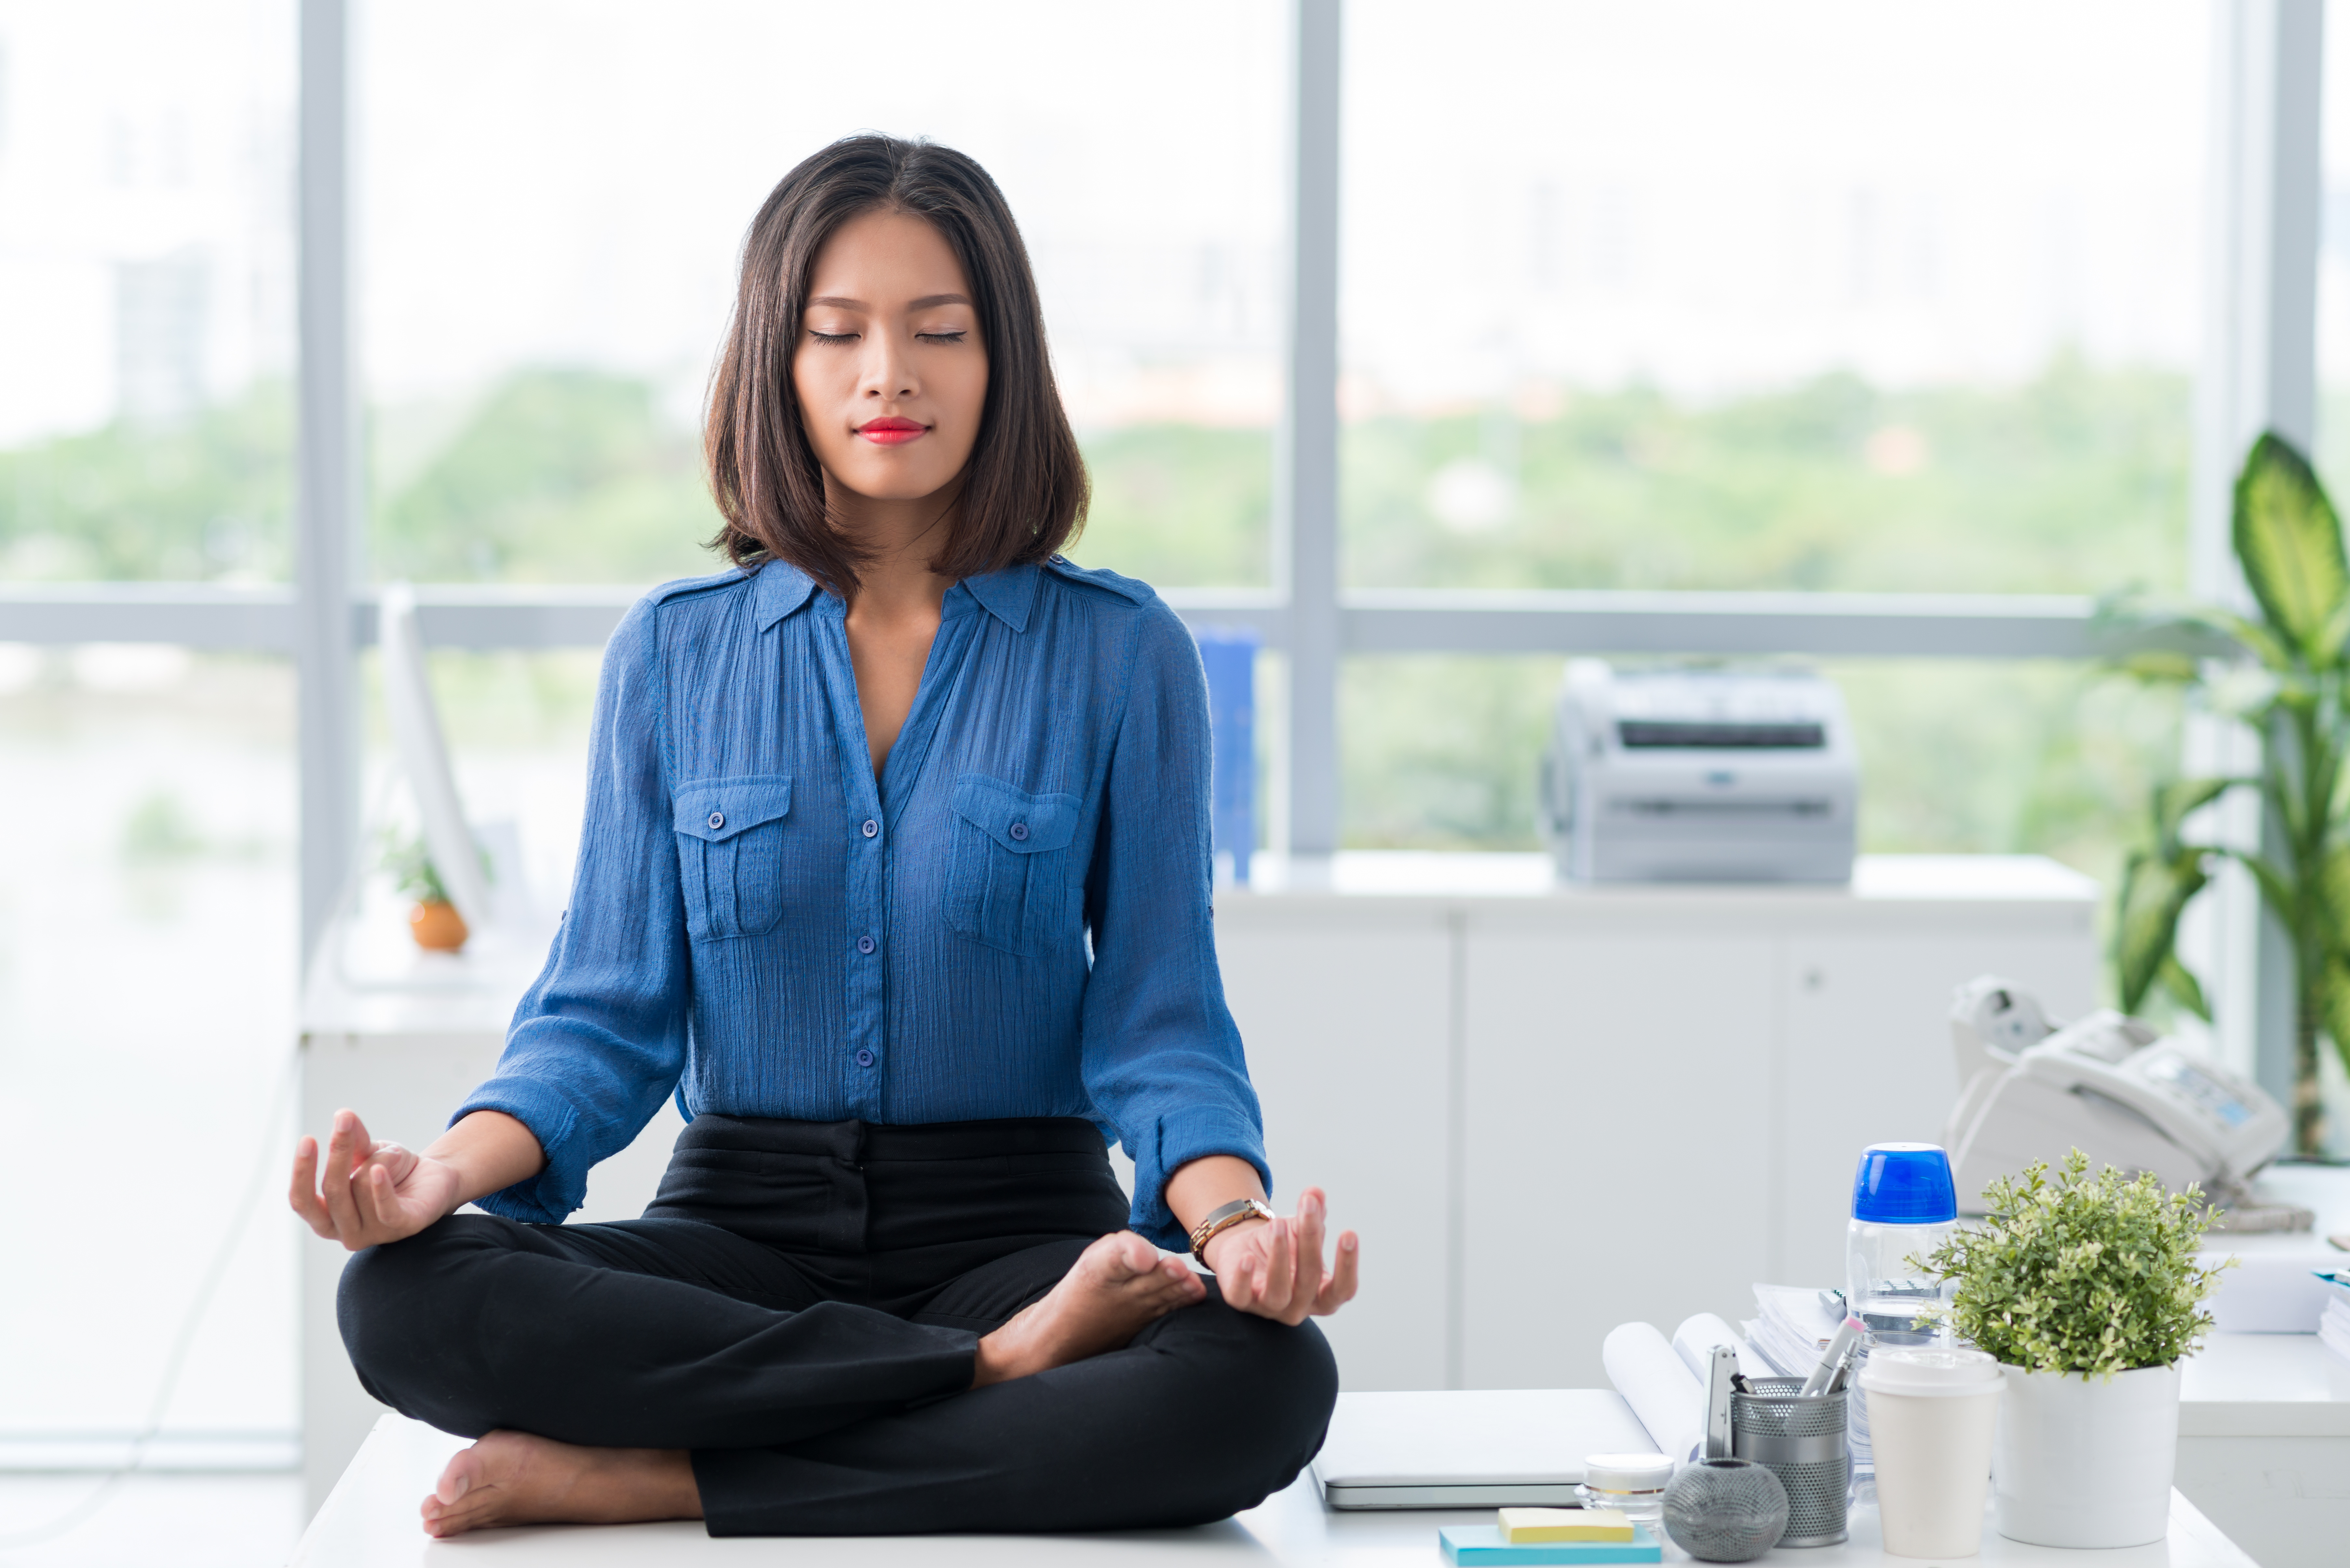 Easy Yoga Stretches to Do at Your Desk